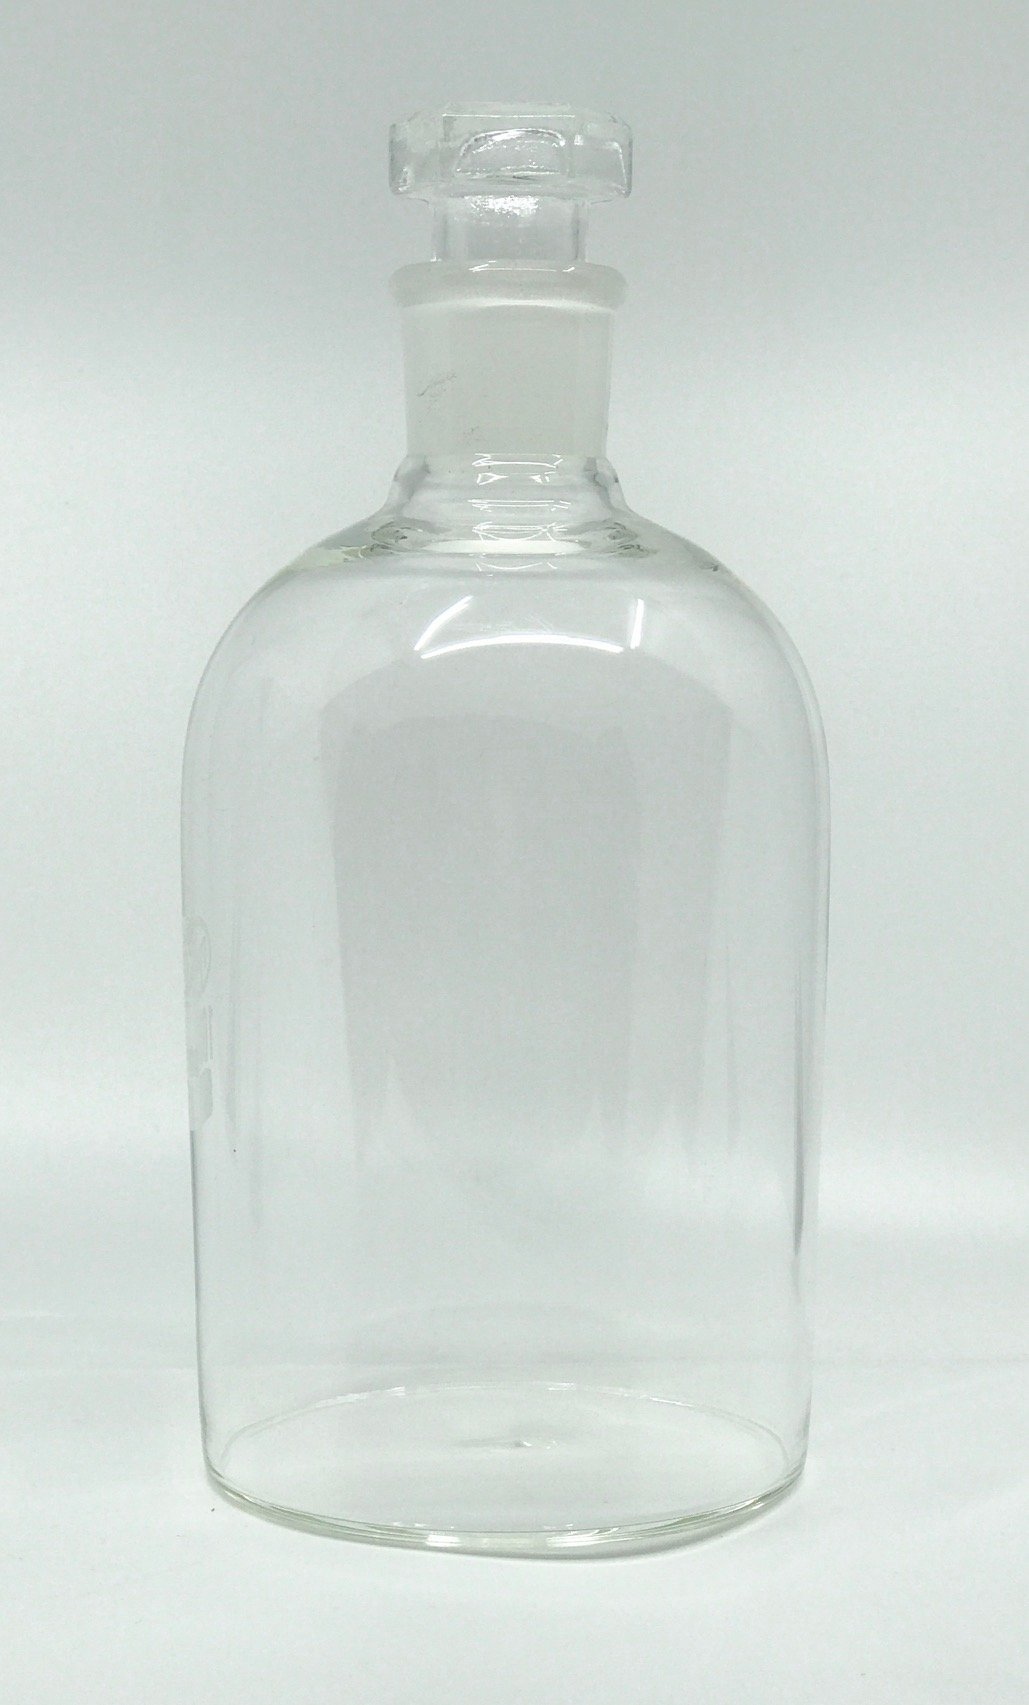 CHEM SCIENCE INC 272.232.05 Bottles Reagent, Narrow Mouth, Clear Glass, 500 mL